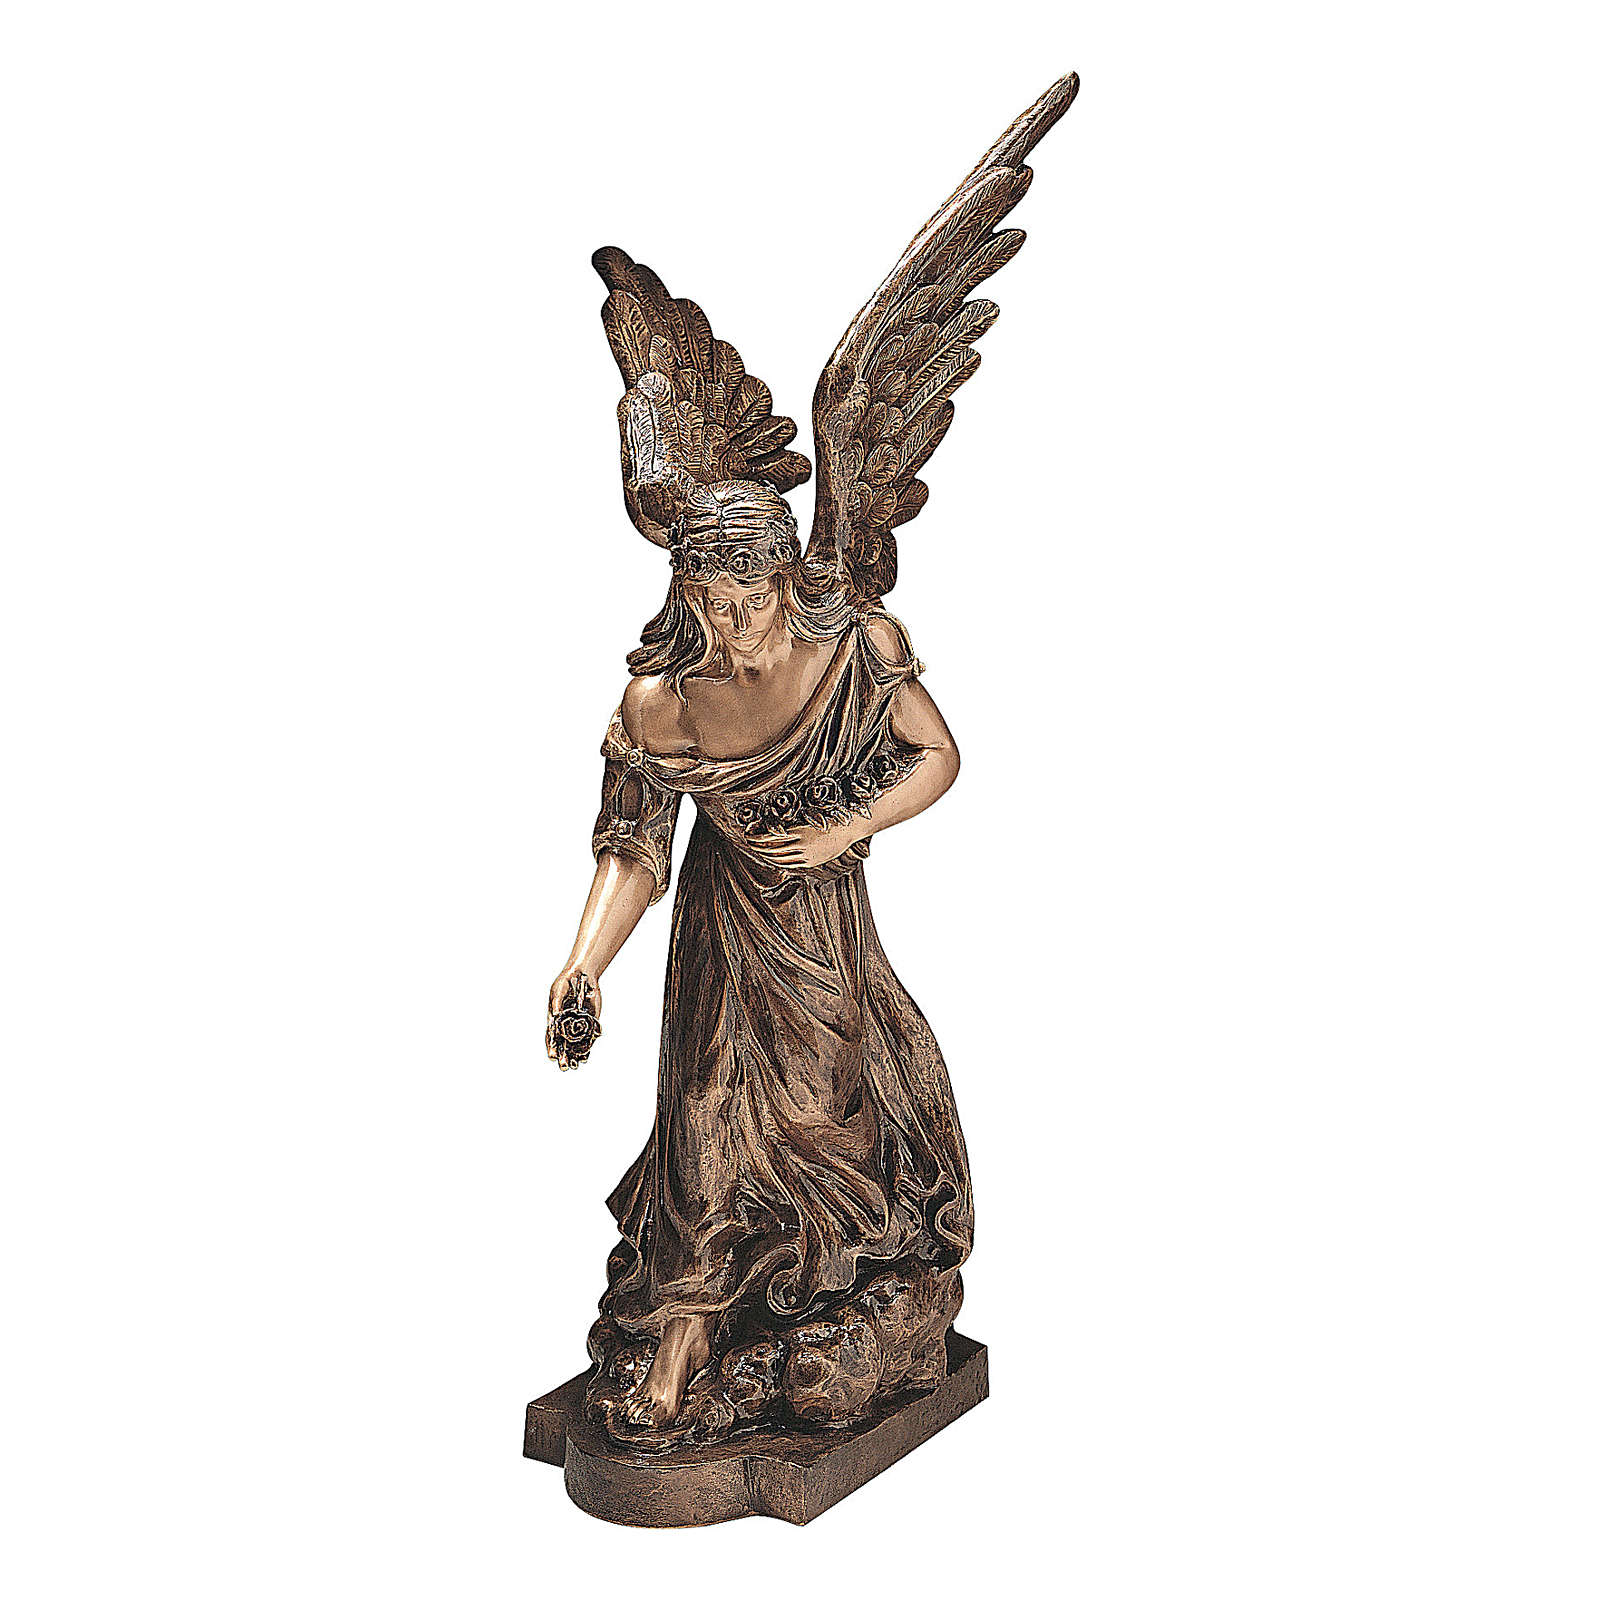 Sculpture of Angel spreading flowers in bronze 145 cm for EXTERNAL USE 4